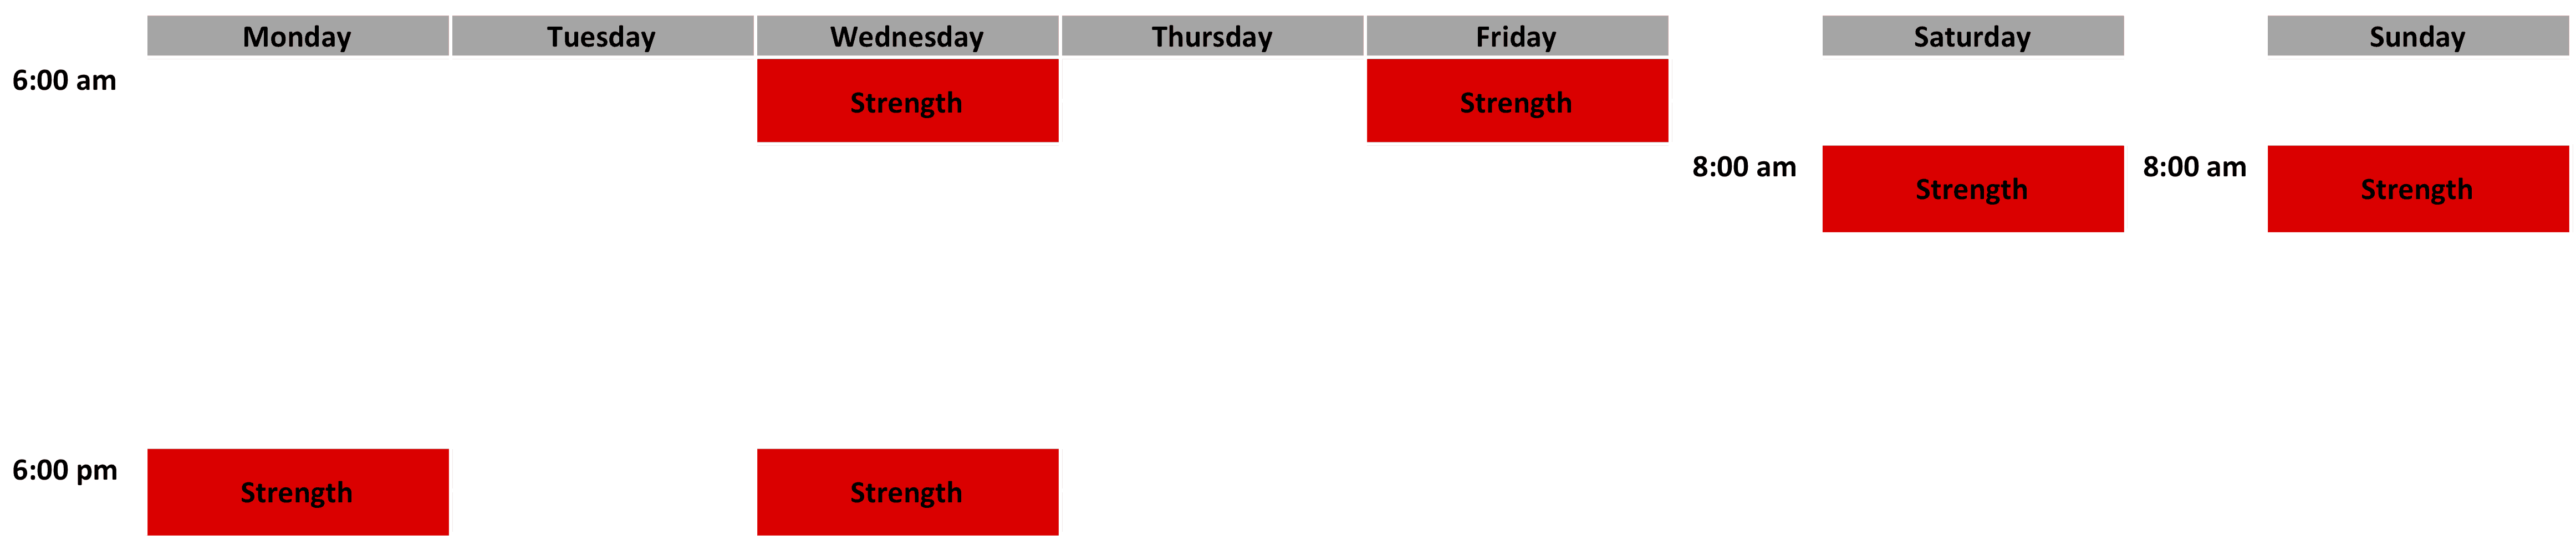 Strength Schedule - April 2019